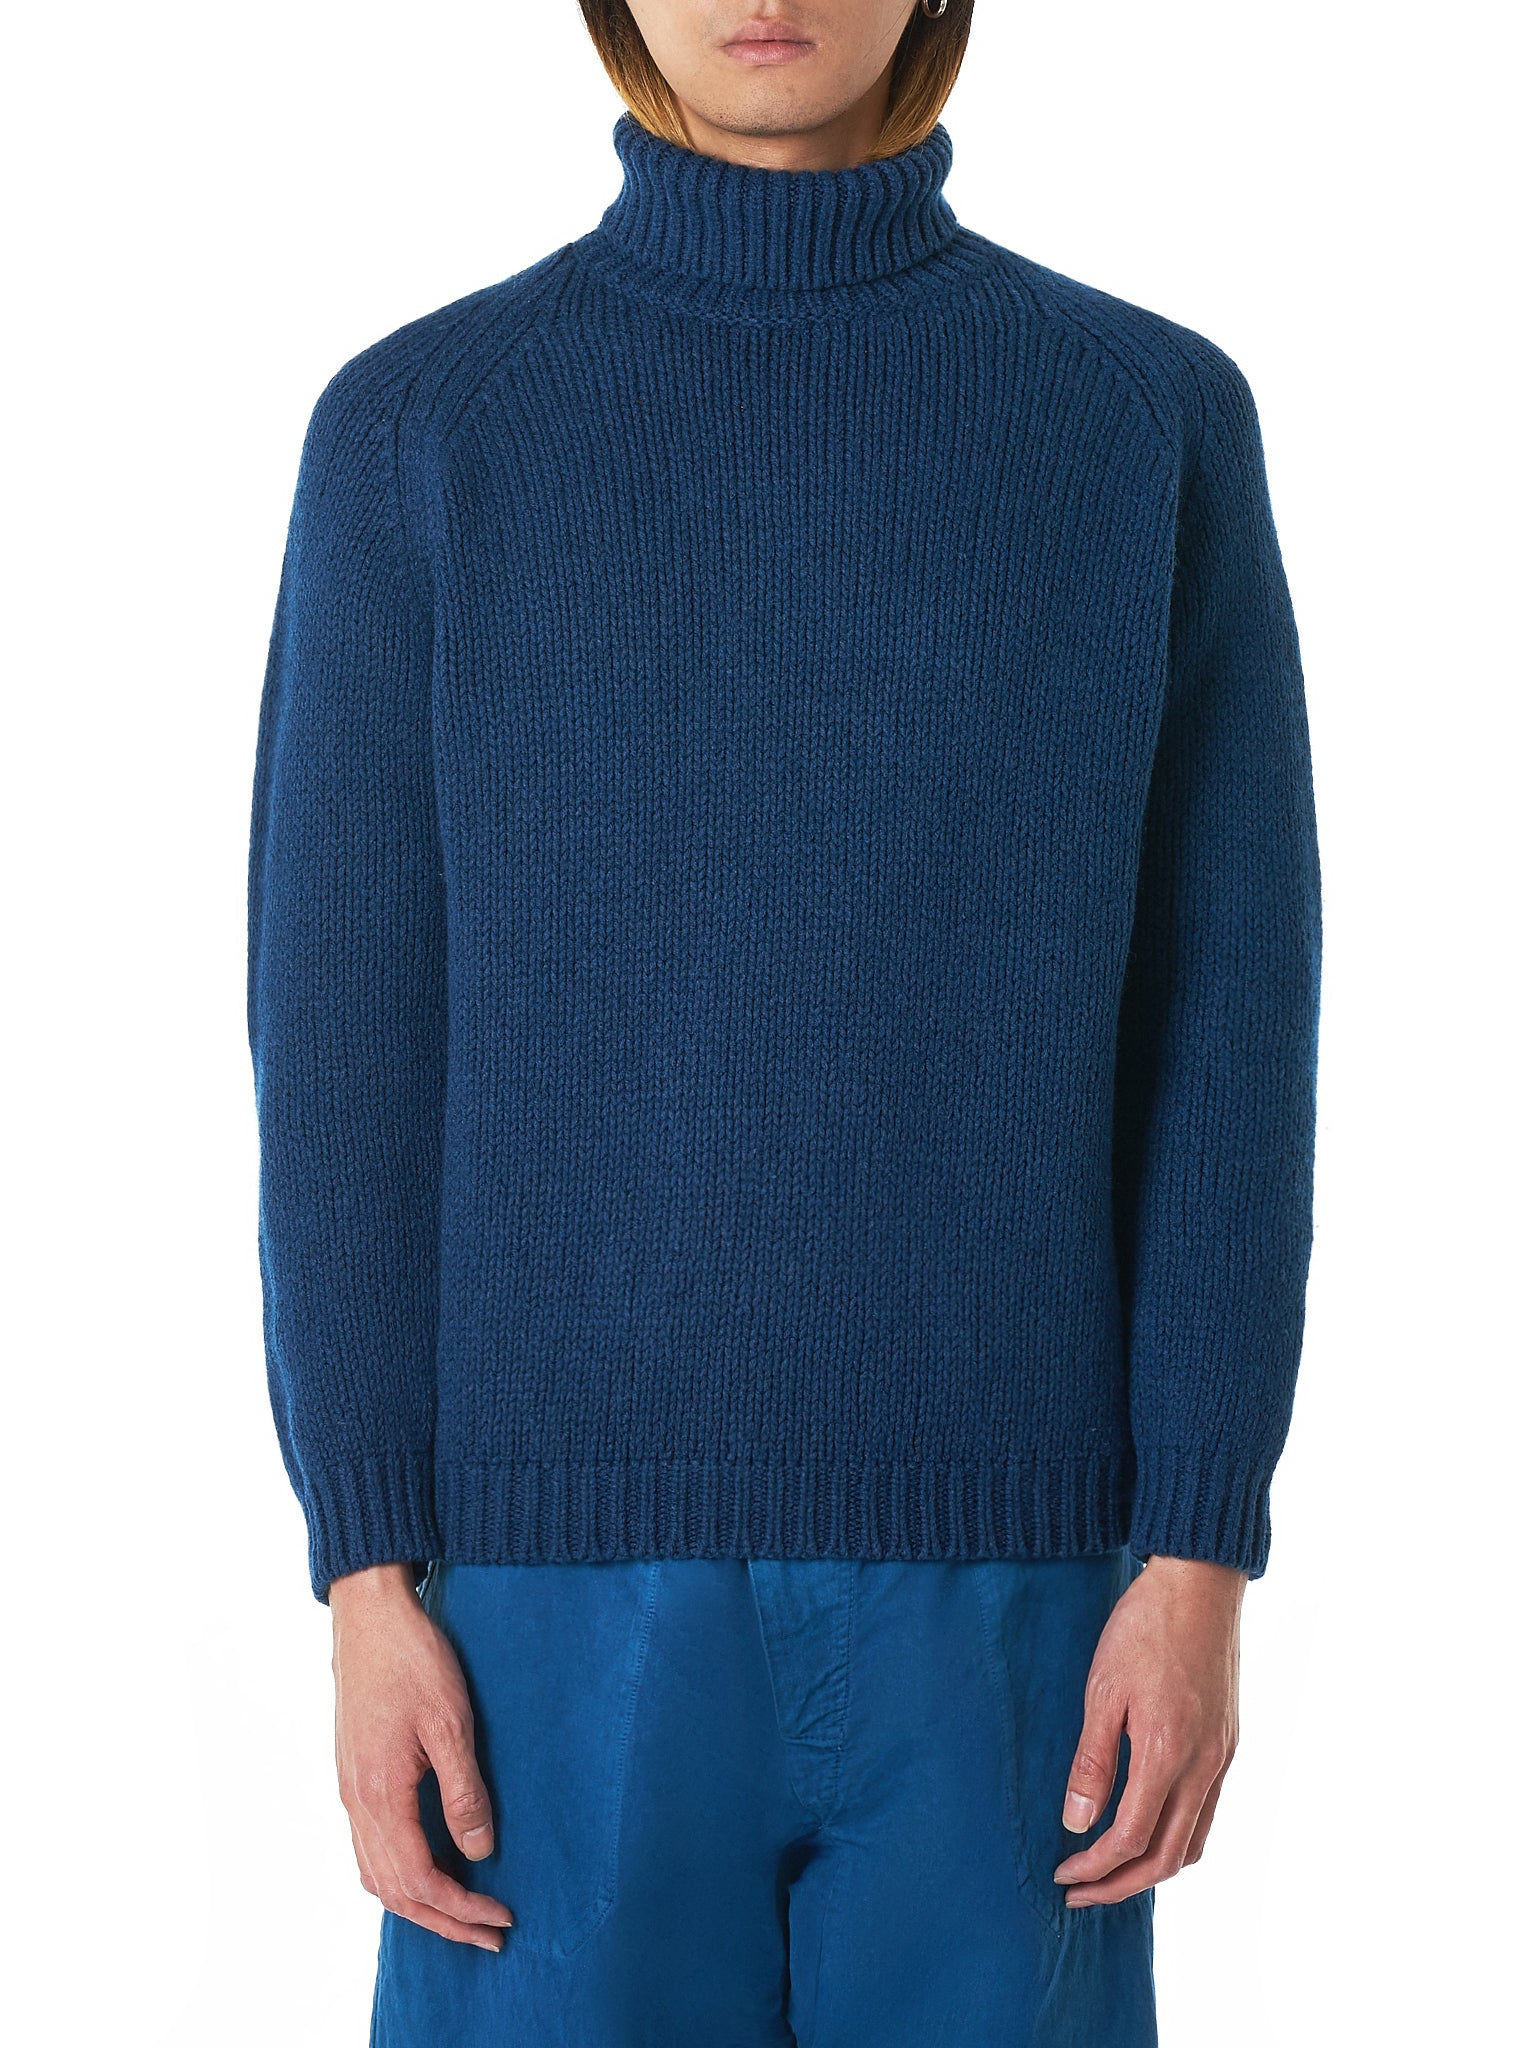 Bleu de Cocagne Turtleneck Sweater - Hlorenzo Front